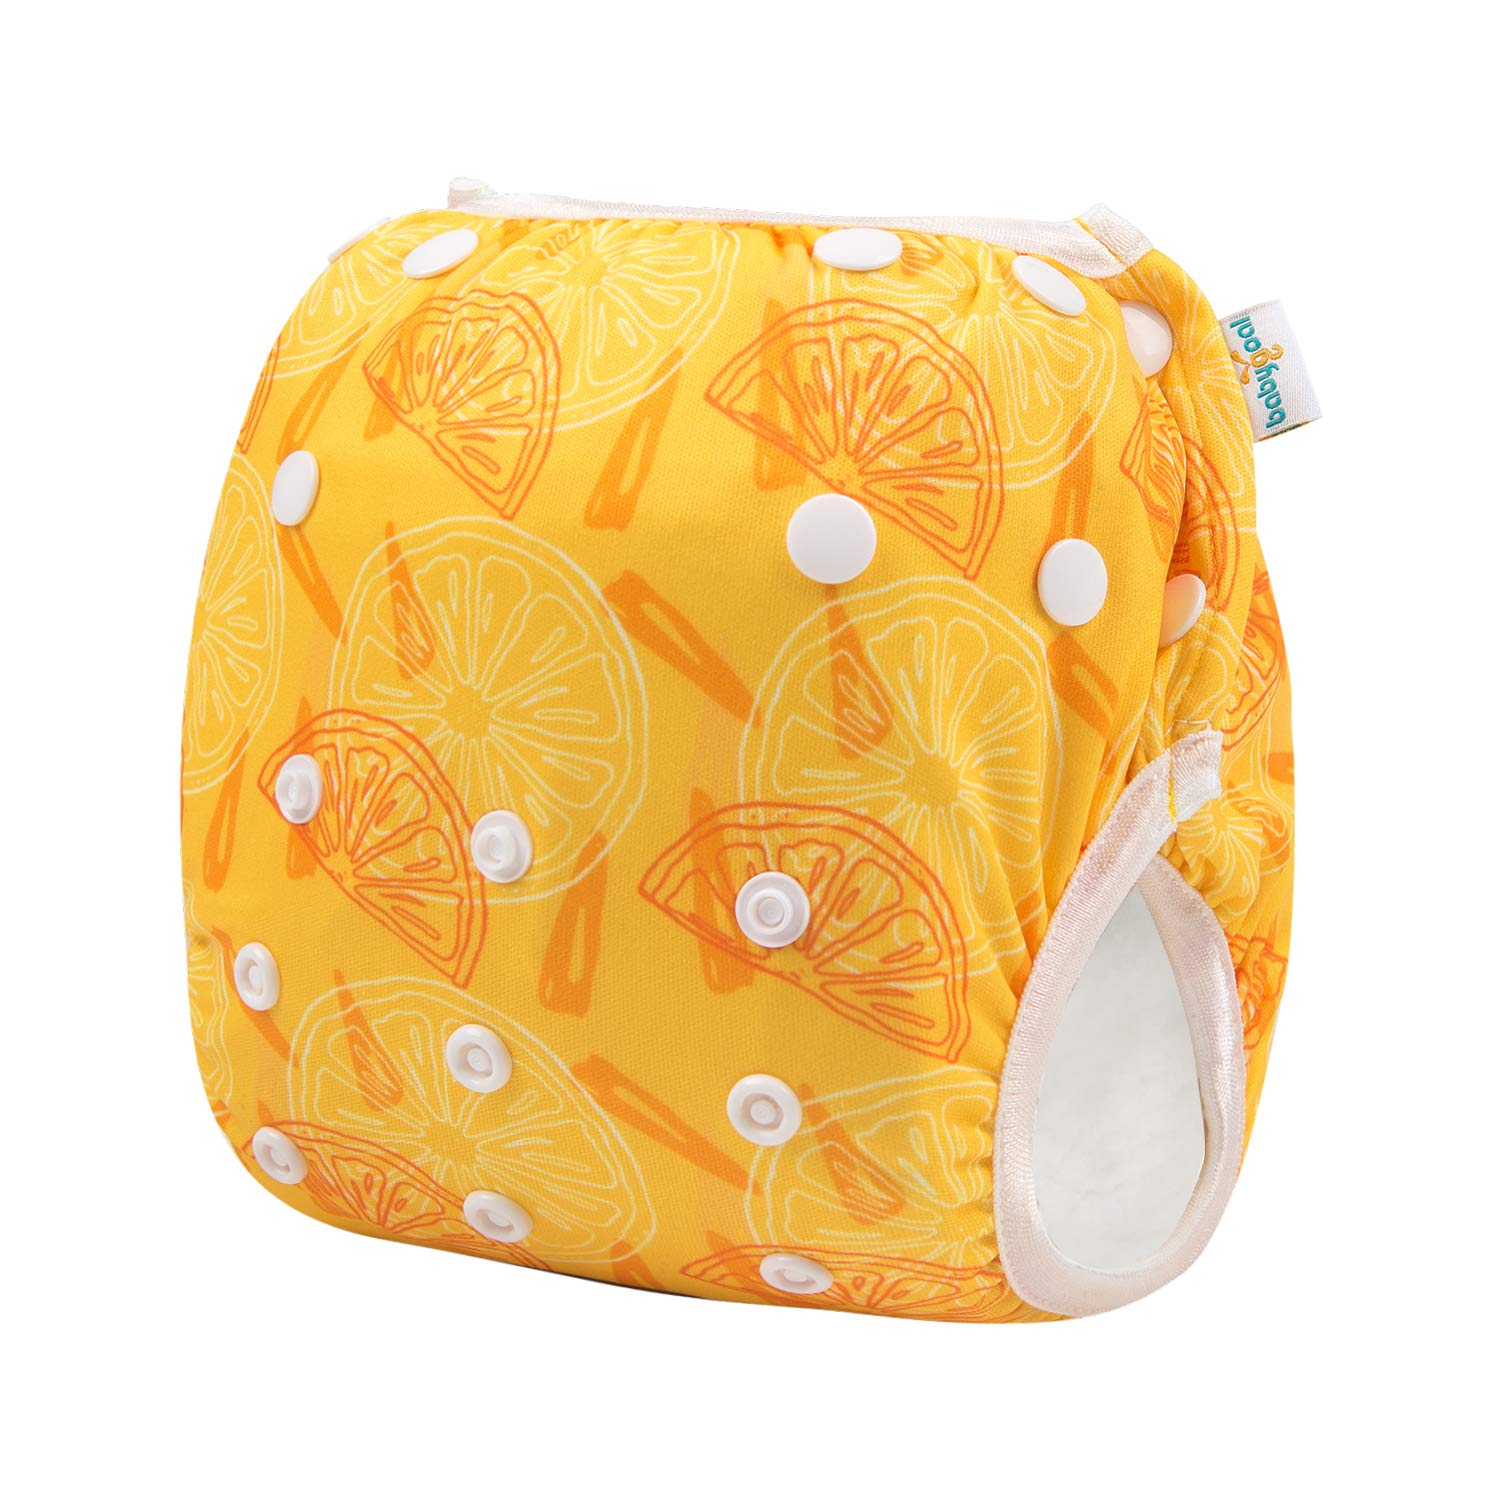 Washable and Adjustable for Babies 0-3 Years ZFSW26 babygoal Baby Reusable Swim Diaper